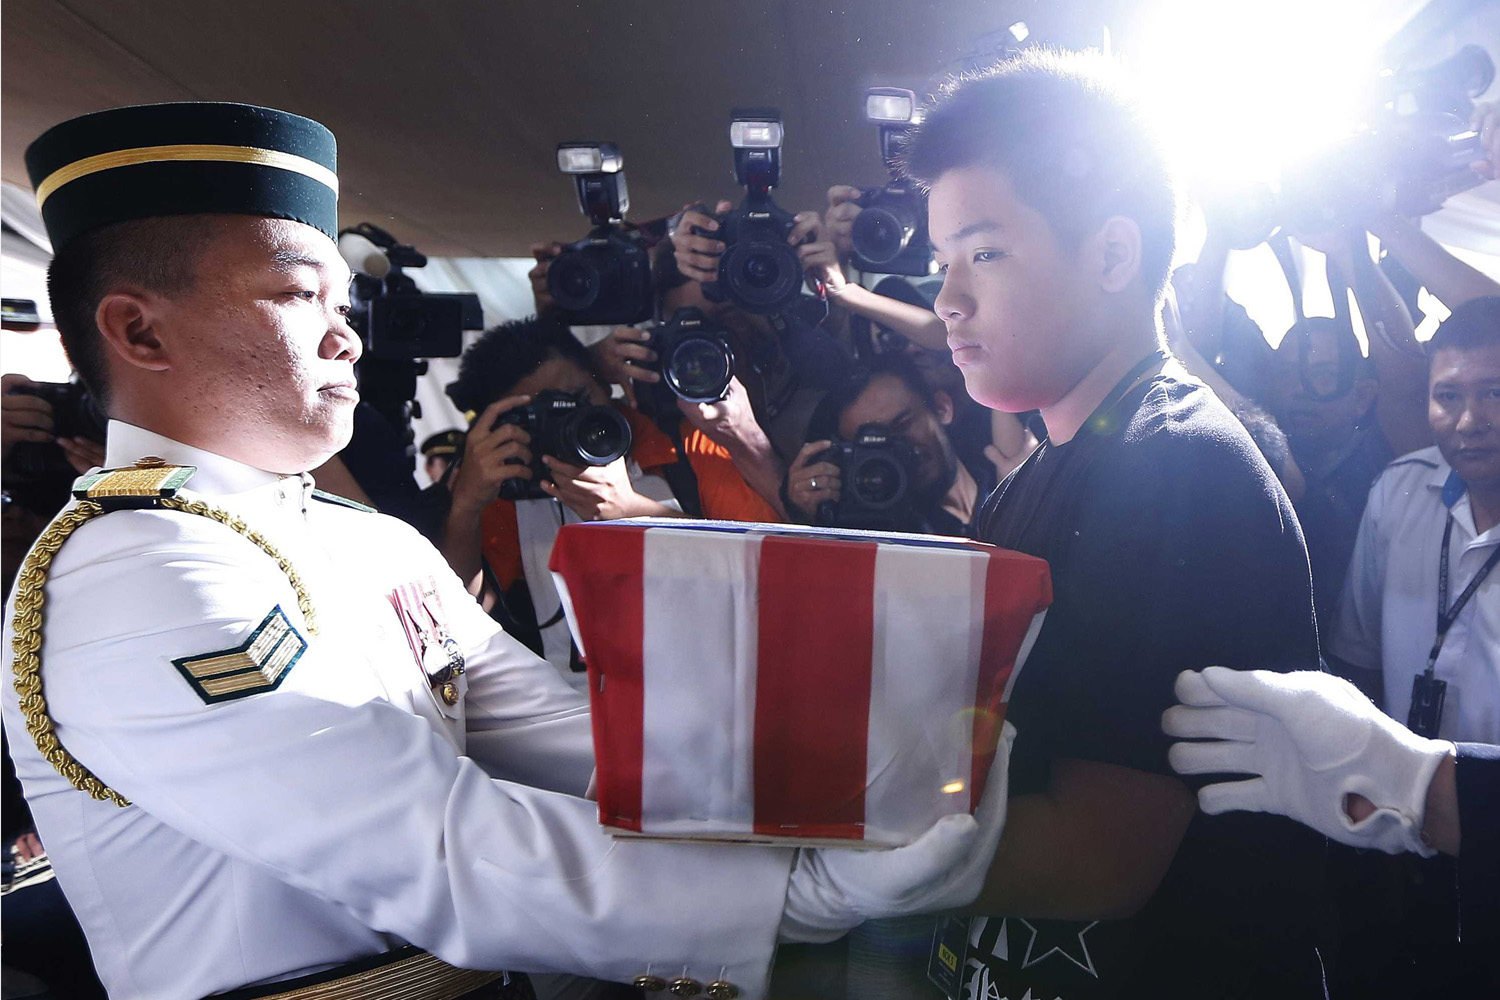 Sept. 2, 2014. Melvic Choo, 13, accepts the ashes of his father, MH17 co-pilot Eugene Choo, at his wake in Seremban. Malaysian Airlines (MAS) Flight MH17 crashed after being shot down over war-torn Ukraine on July 17, killing all 298 people on board.